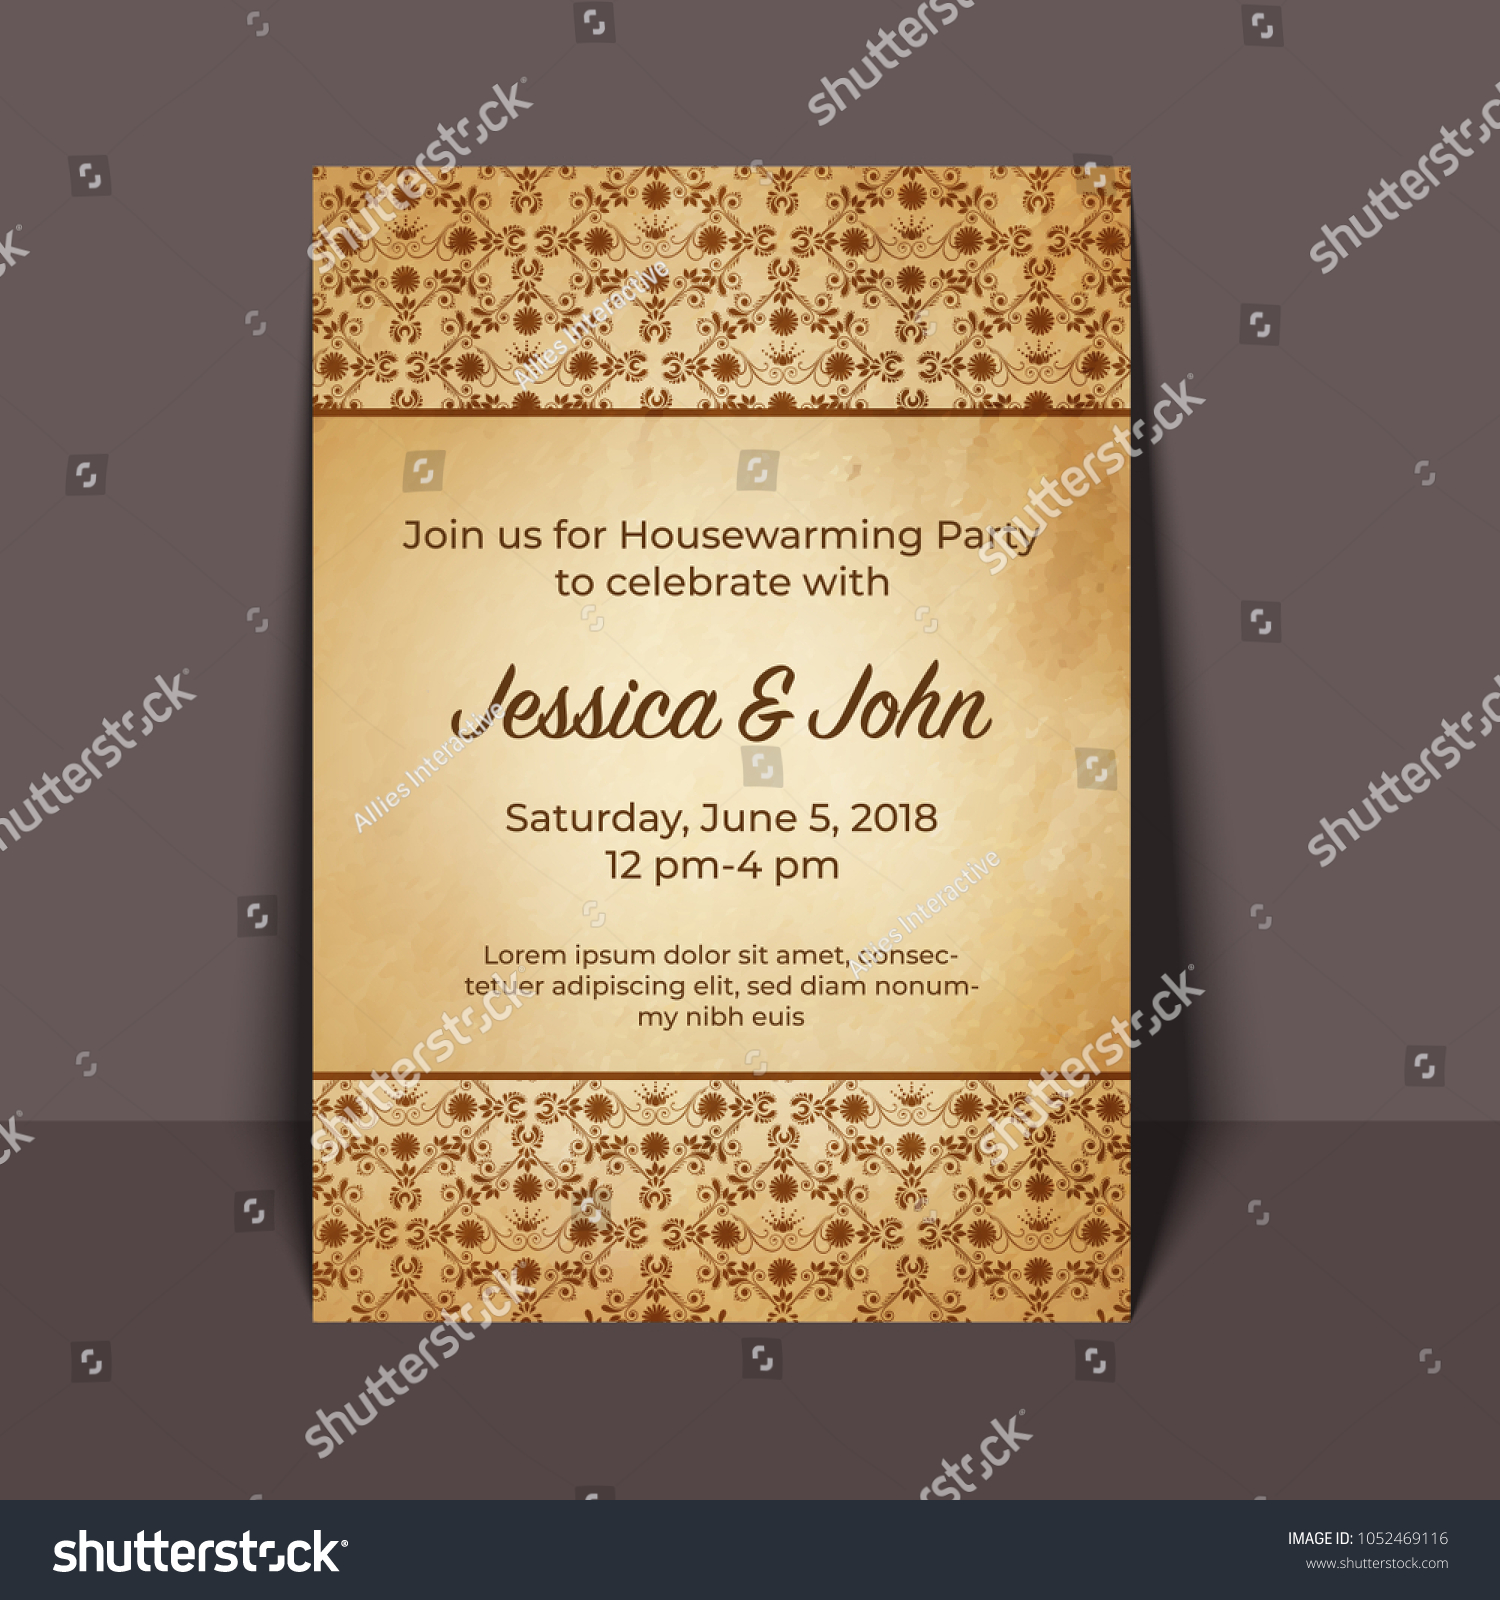 Housewarming party invitation card design stock vector 1052469116 housewarming party invitation card design stopboris Gallery